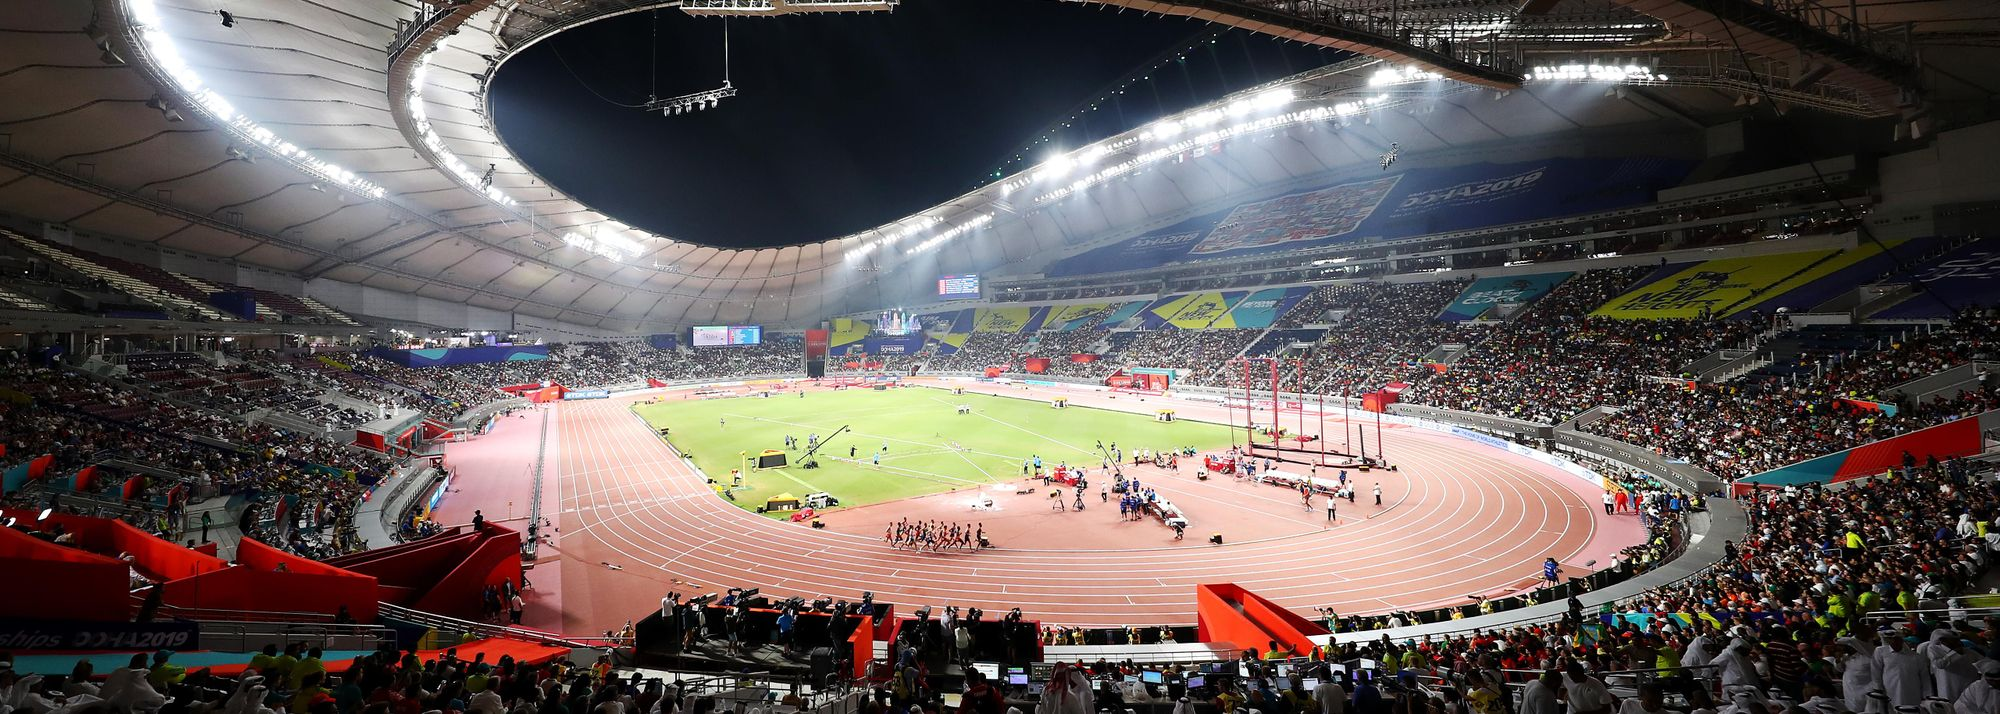 World Athletics President Sebastian Coe has described the World Athletics Championships Doha 2019 as the best in history in terms of the quality and depth of performances produced by the athletes of more than 200 nations.